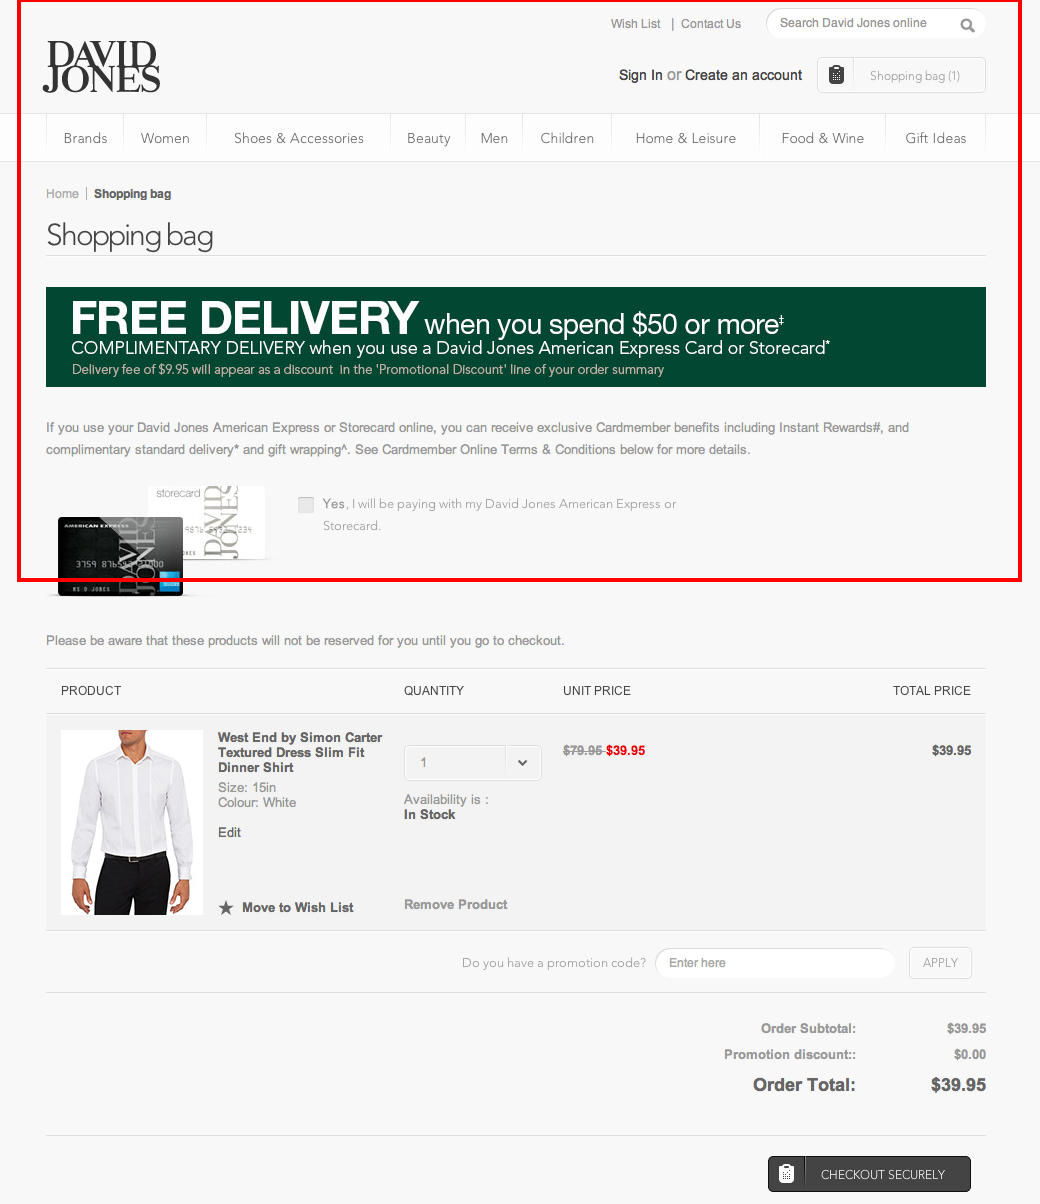 David Jones Online Store shopping cart madness